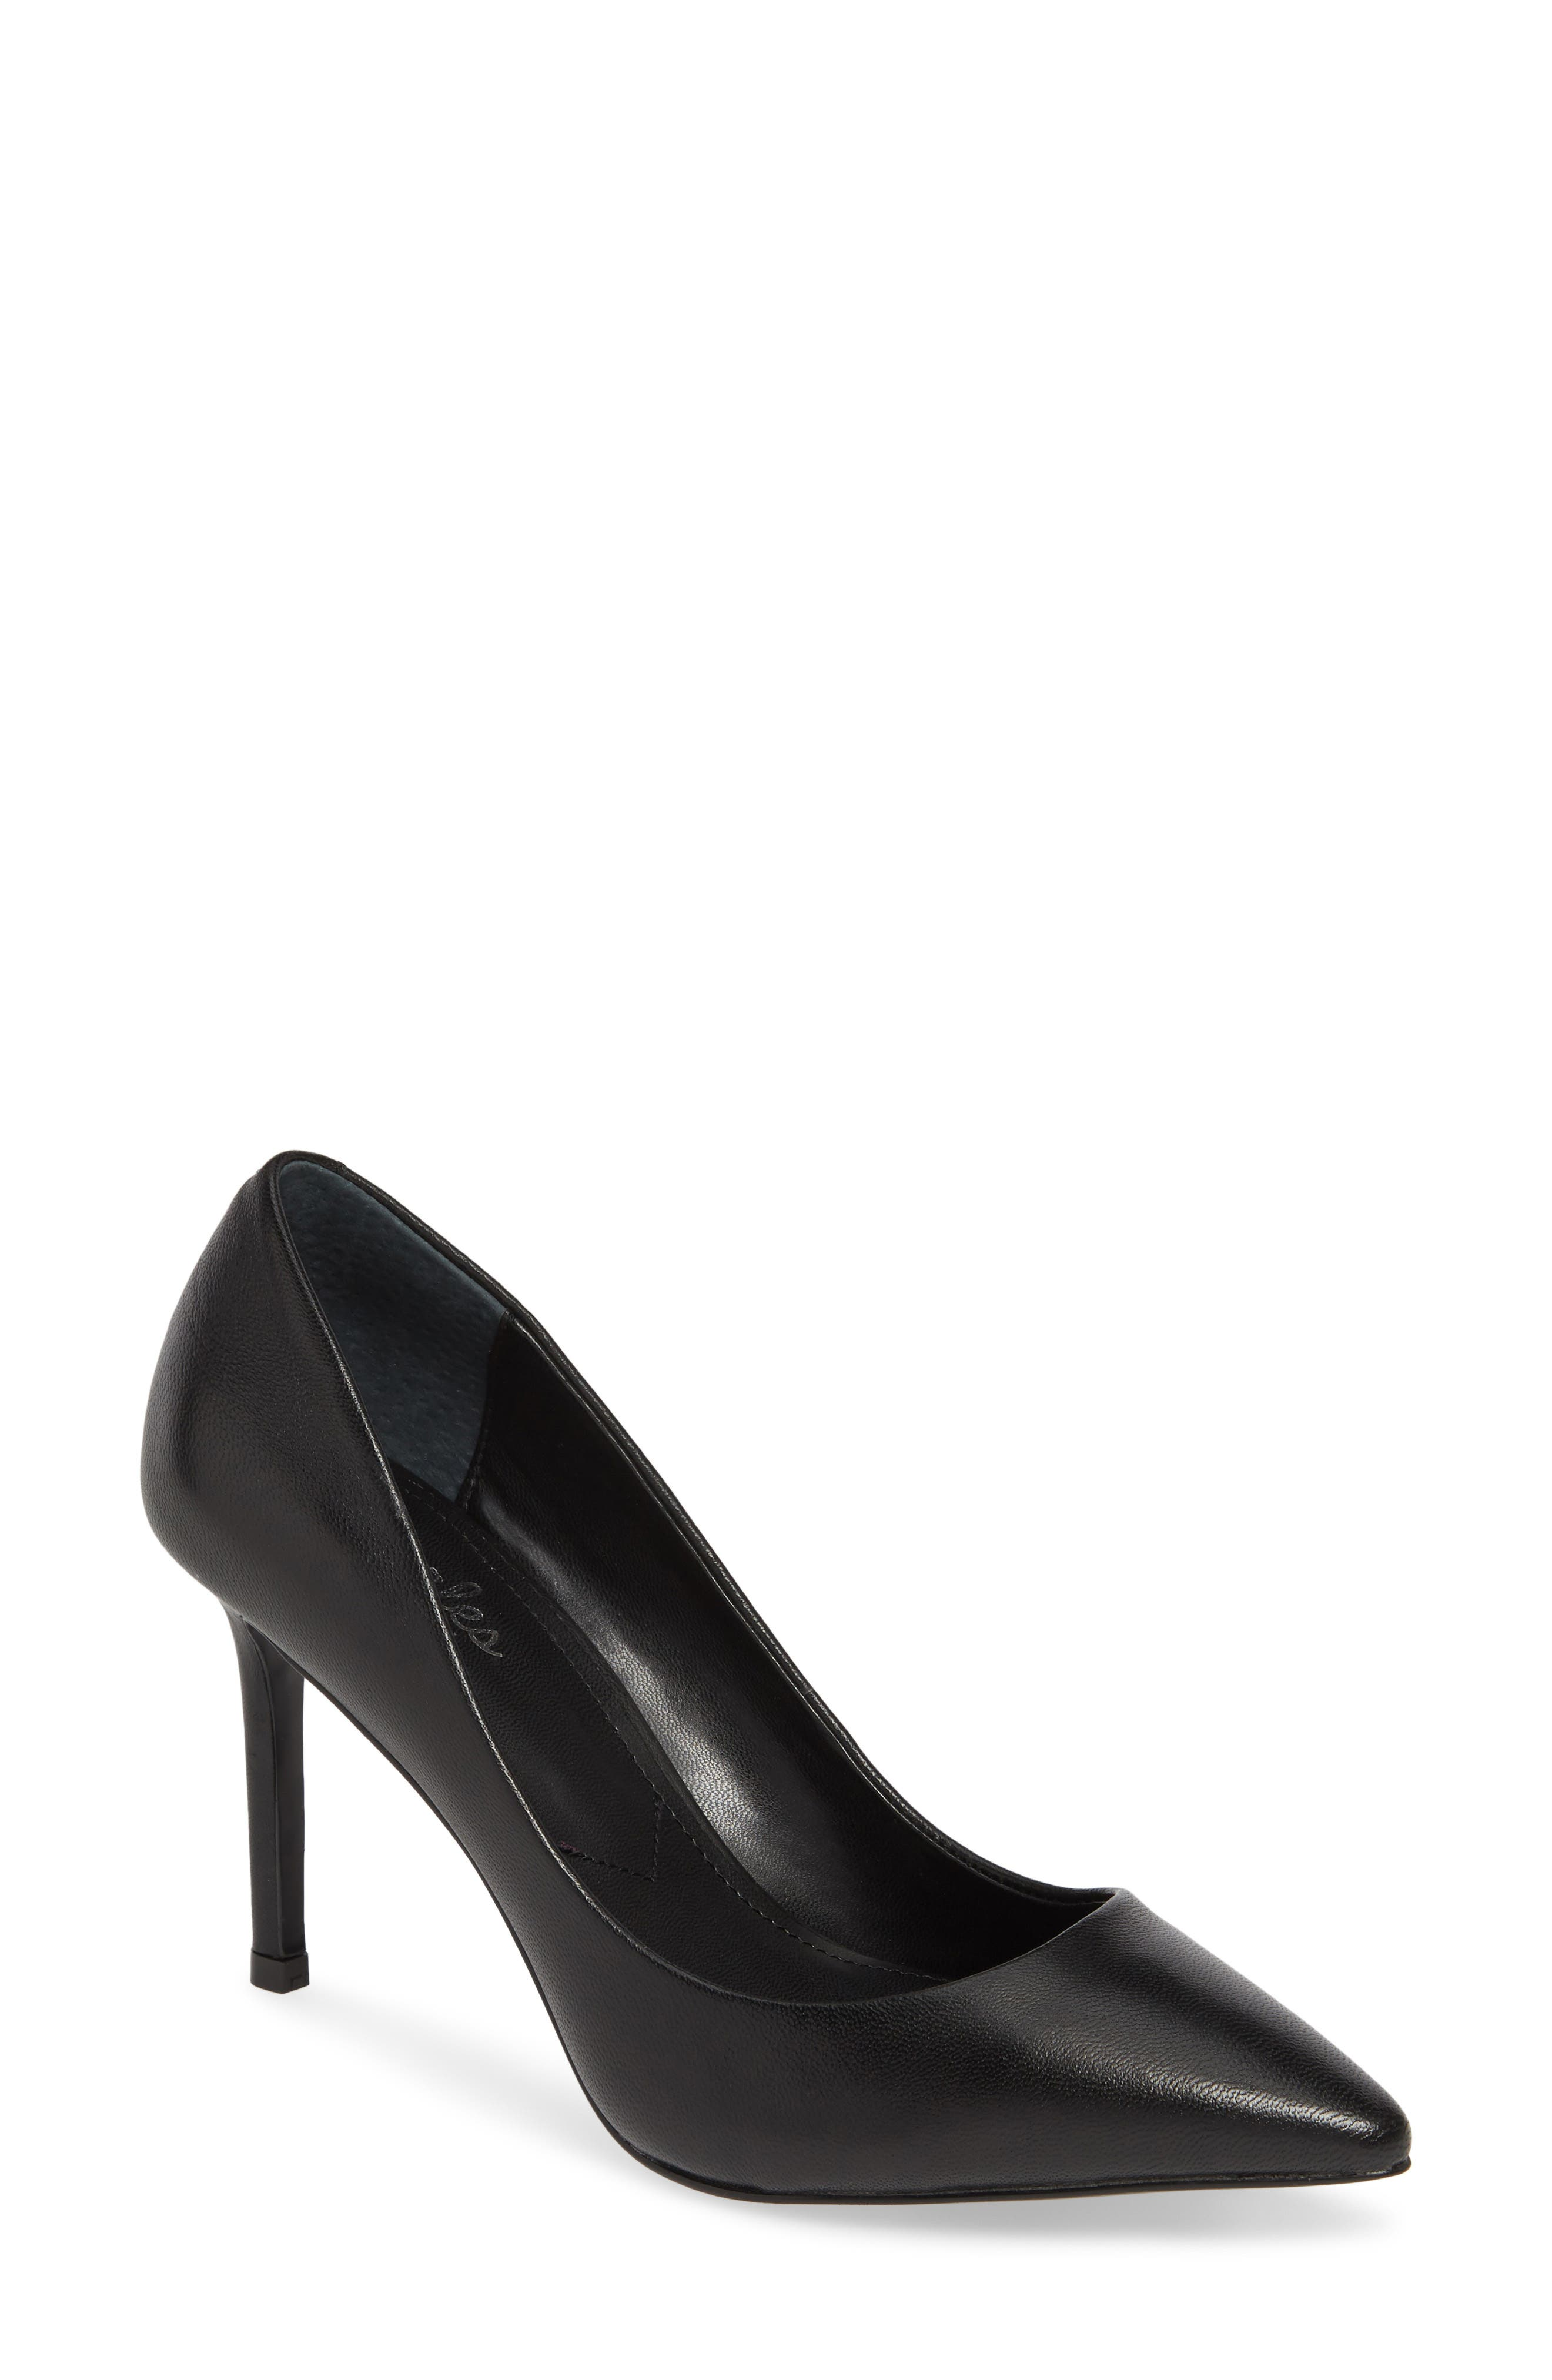 CHARLES BY CHARLES DAVID Vicky Pump, Main, color, BLACK LEATHER